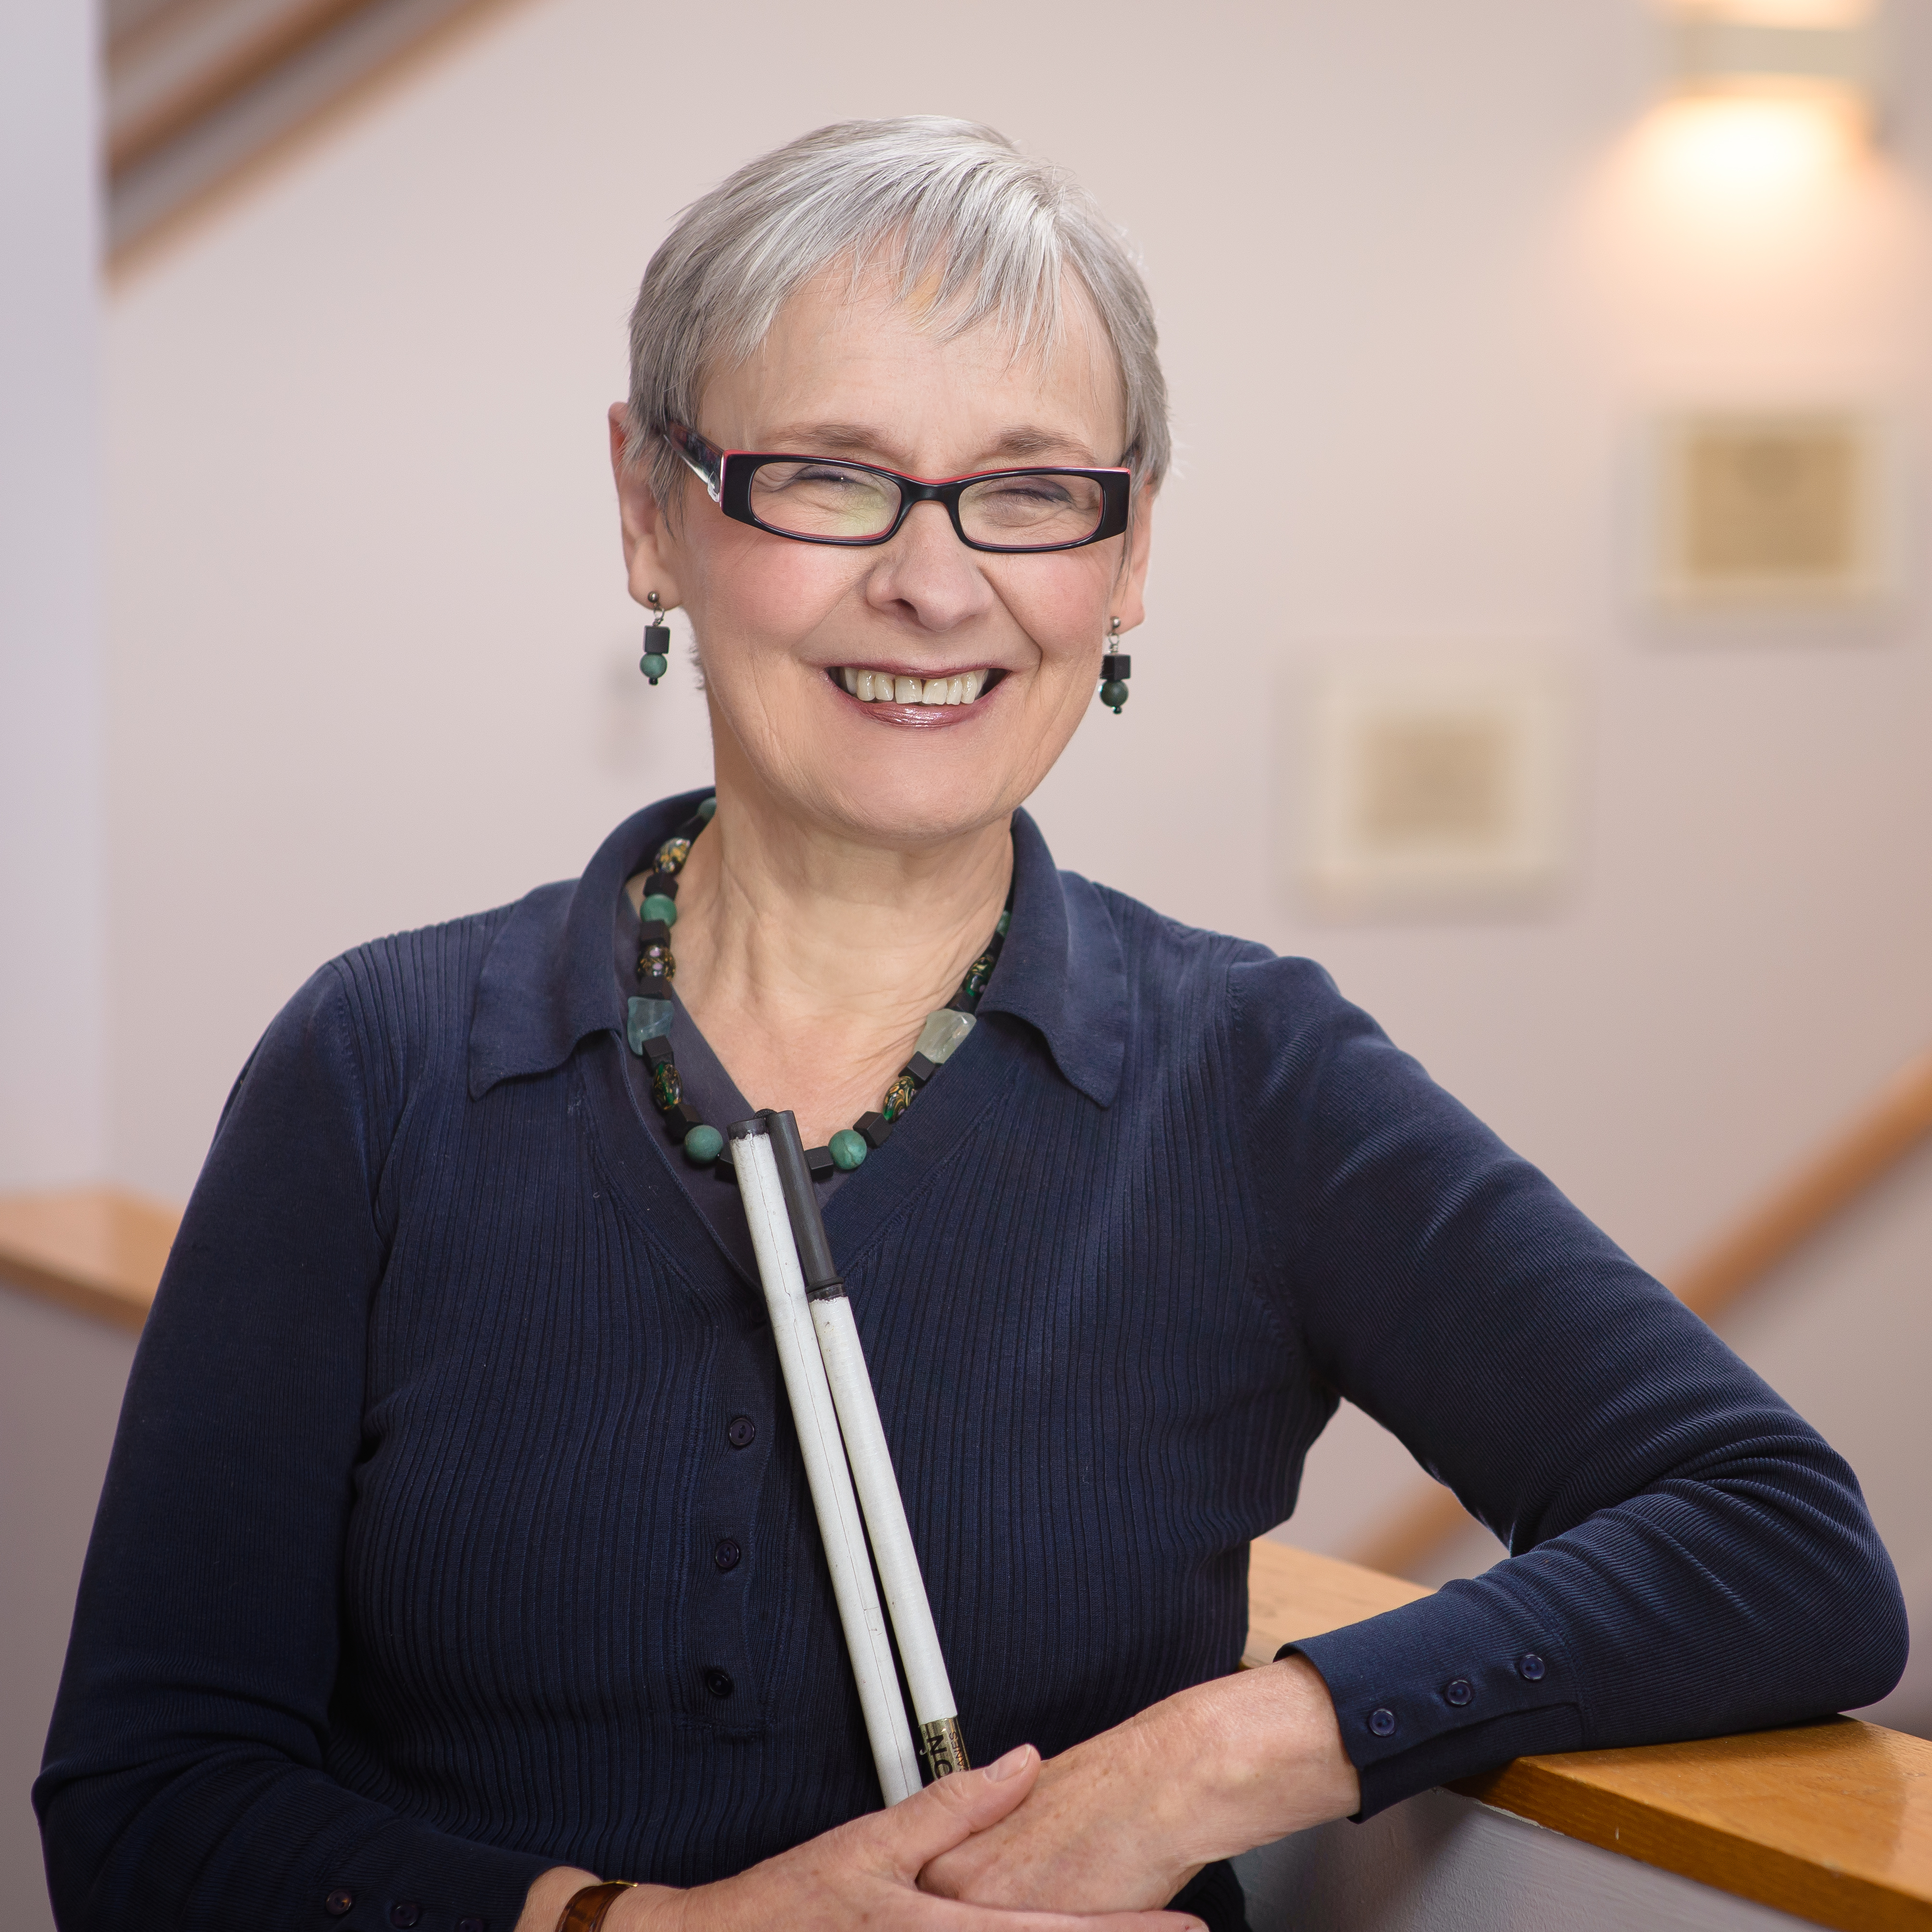 Hannah Fairbairn holding a partly folded white cane in one hand and leaning on a stair rail. She has white hair and wears glasses.